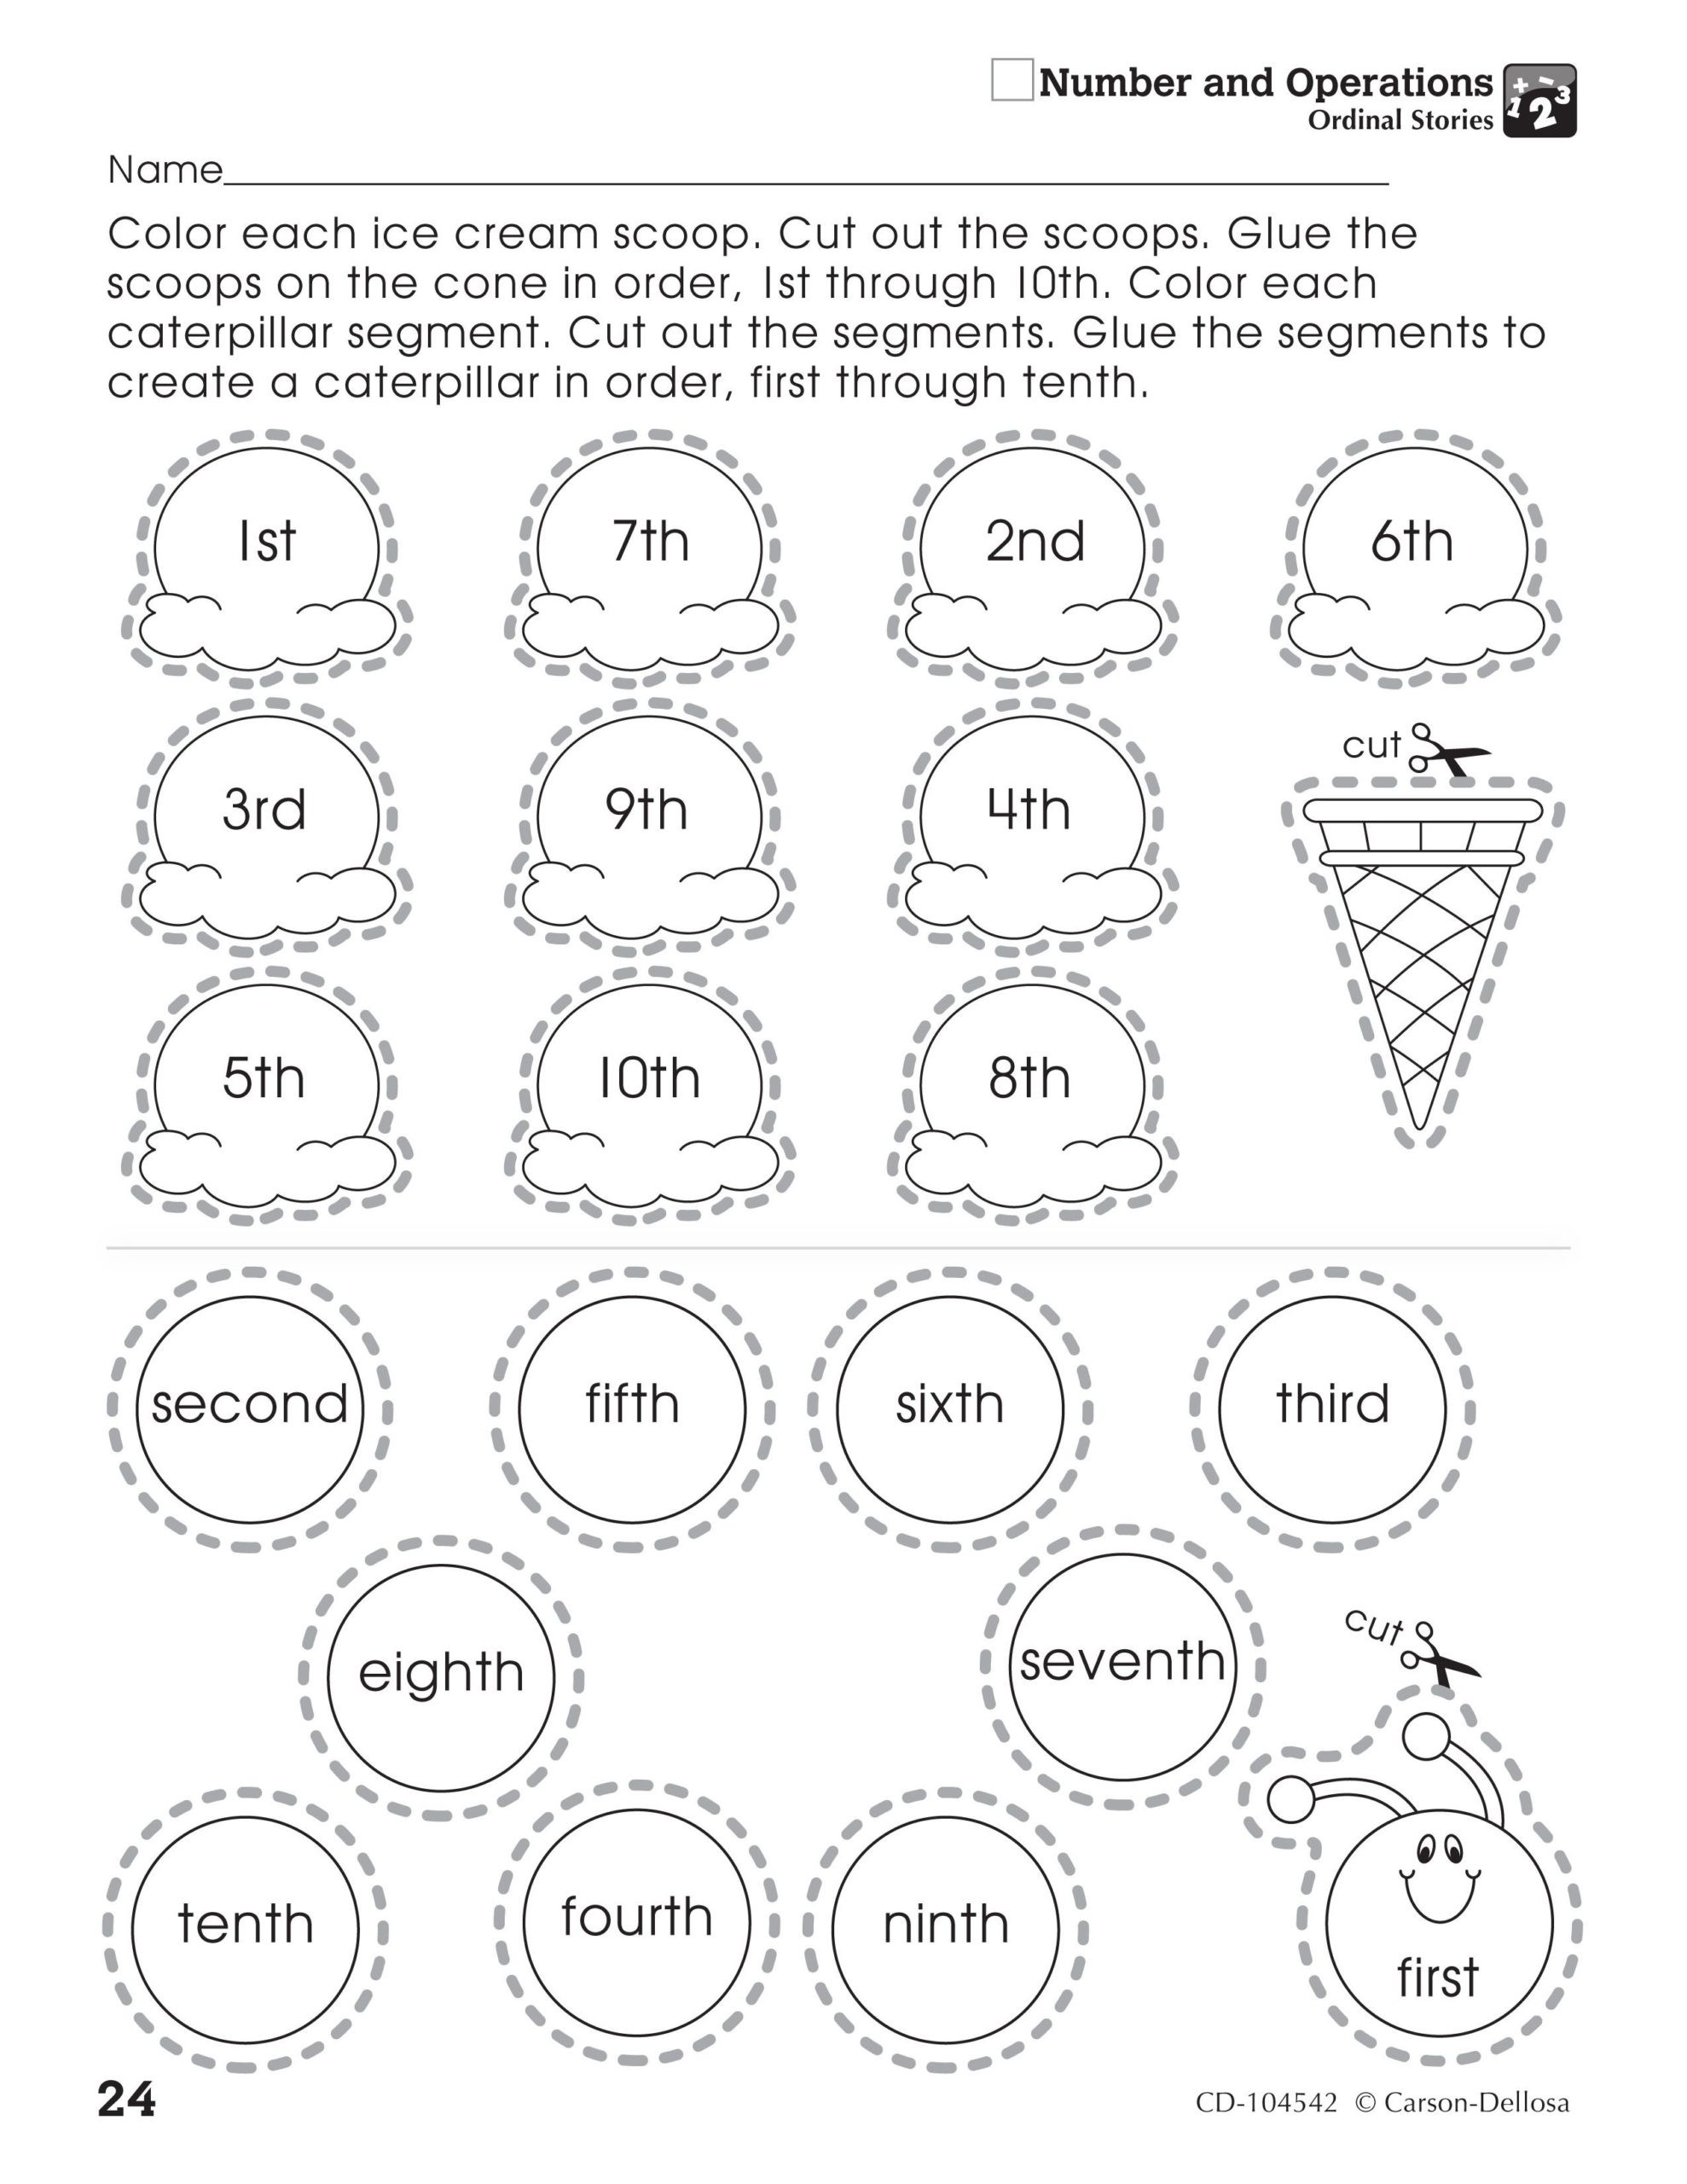 Polygons Worksheets 5th Grade Monthly Archives April 2020 Make A 10 to Add First Grade